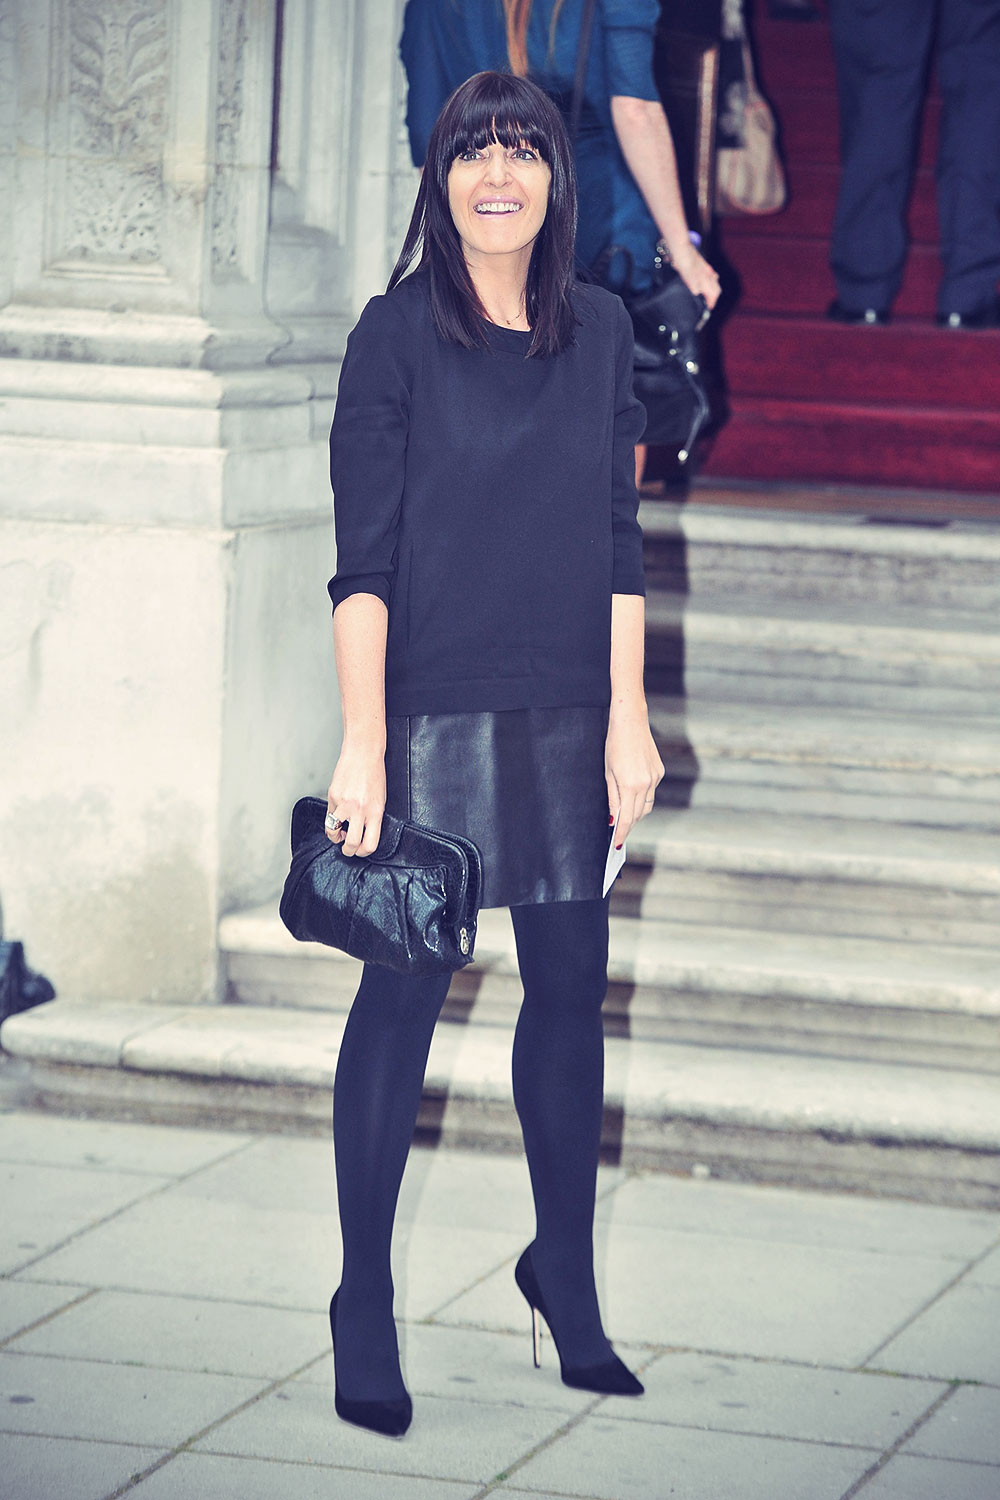 Claudia Winkleman attends Best of Britain's Creative Industries reception